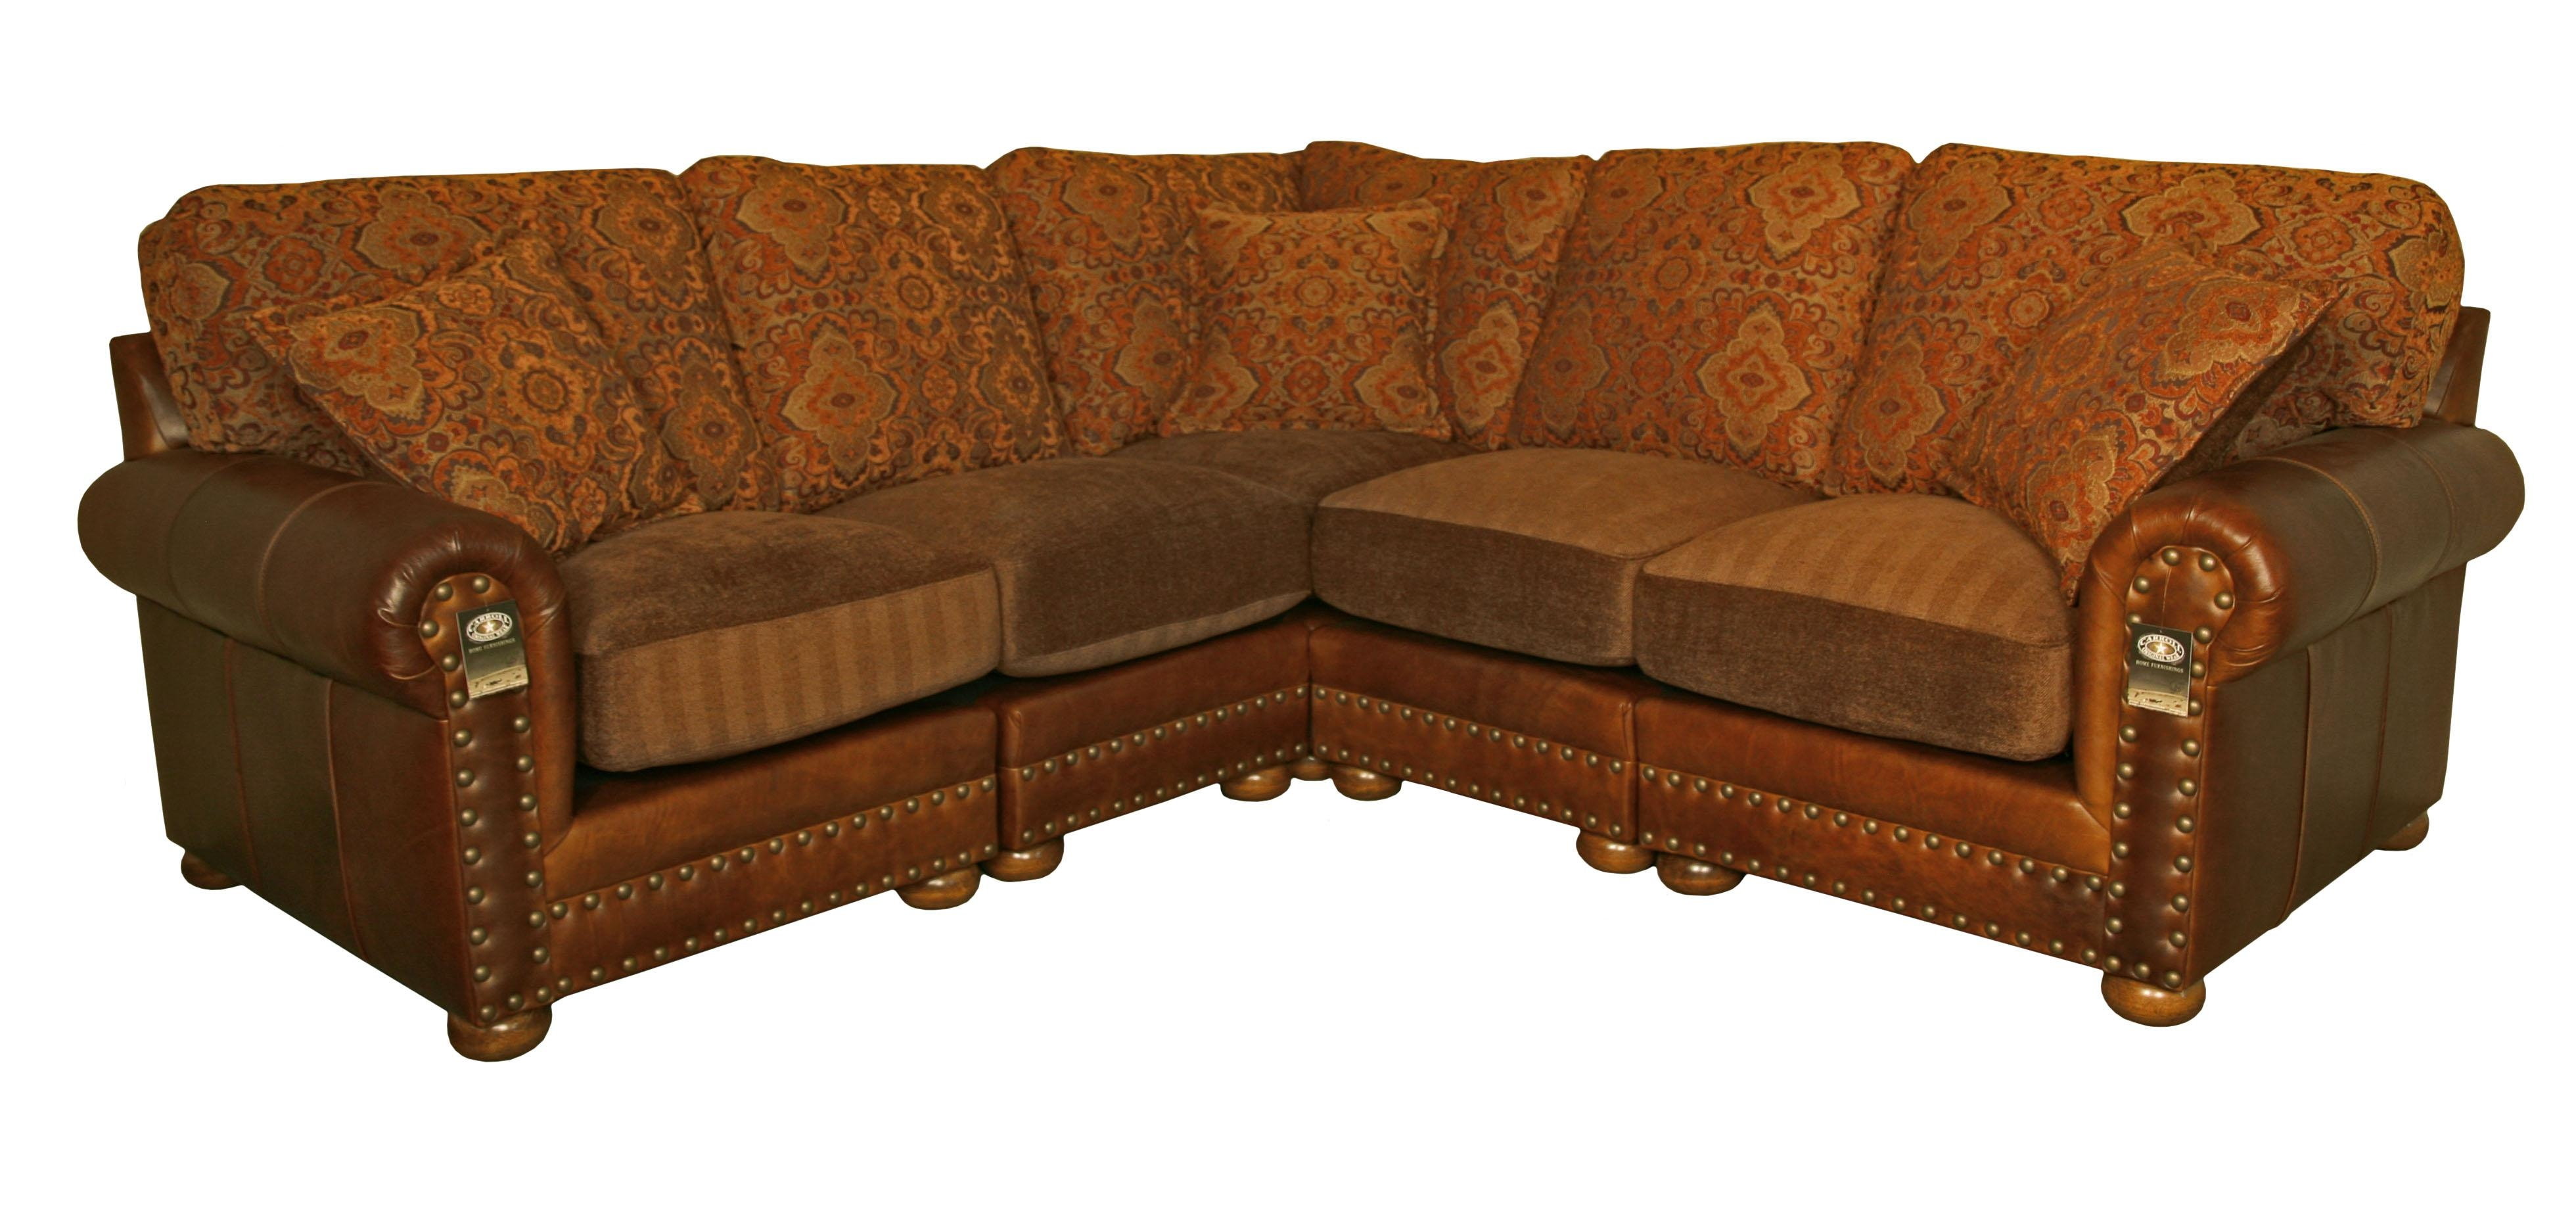 Conversation Sofa Sectional Rs Gold Sofa With Regard To Conversation Sofa Sectional (View 2 of 15)